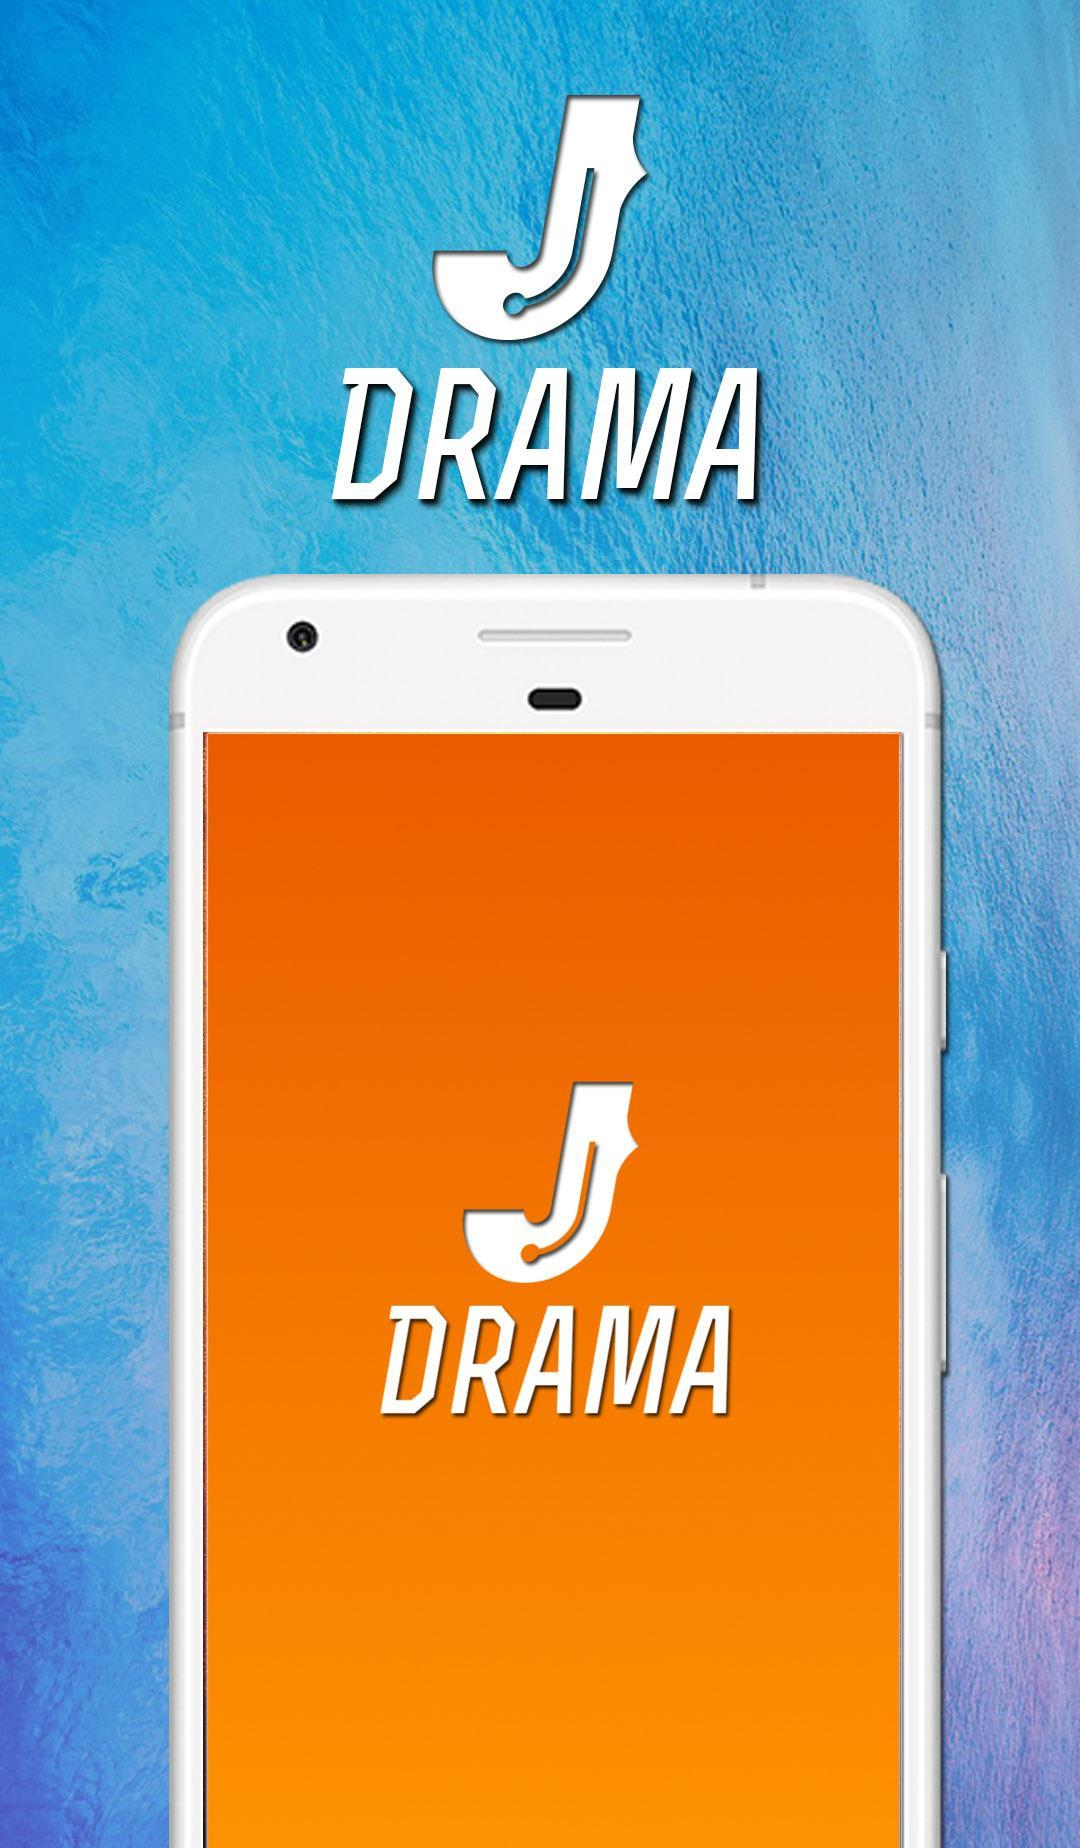 J Drama (English Subtitles) for Android - APK Download